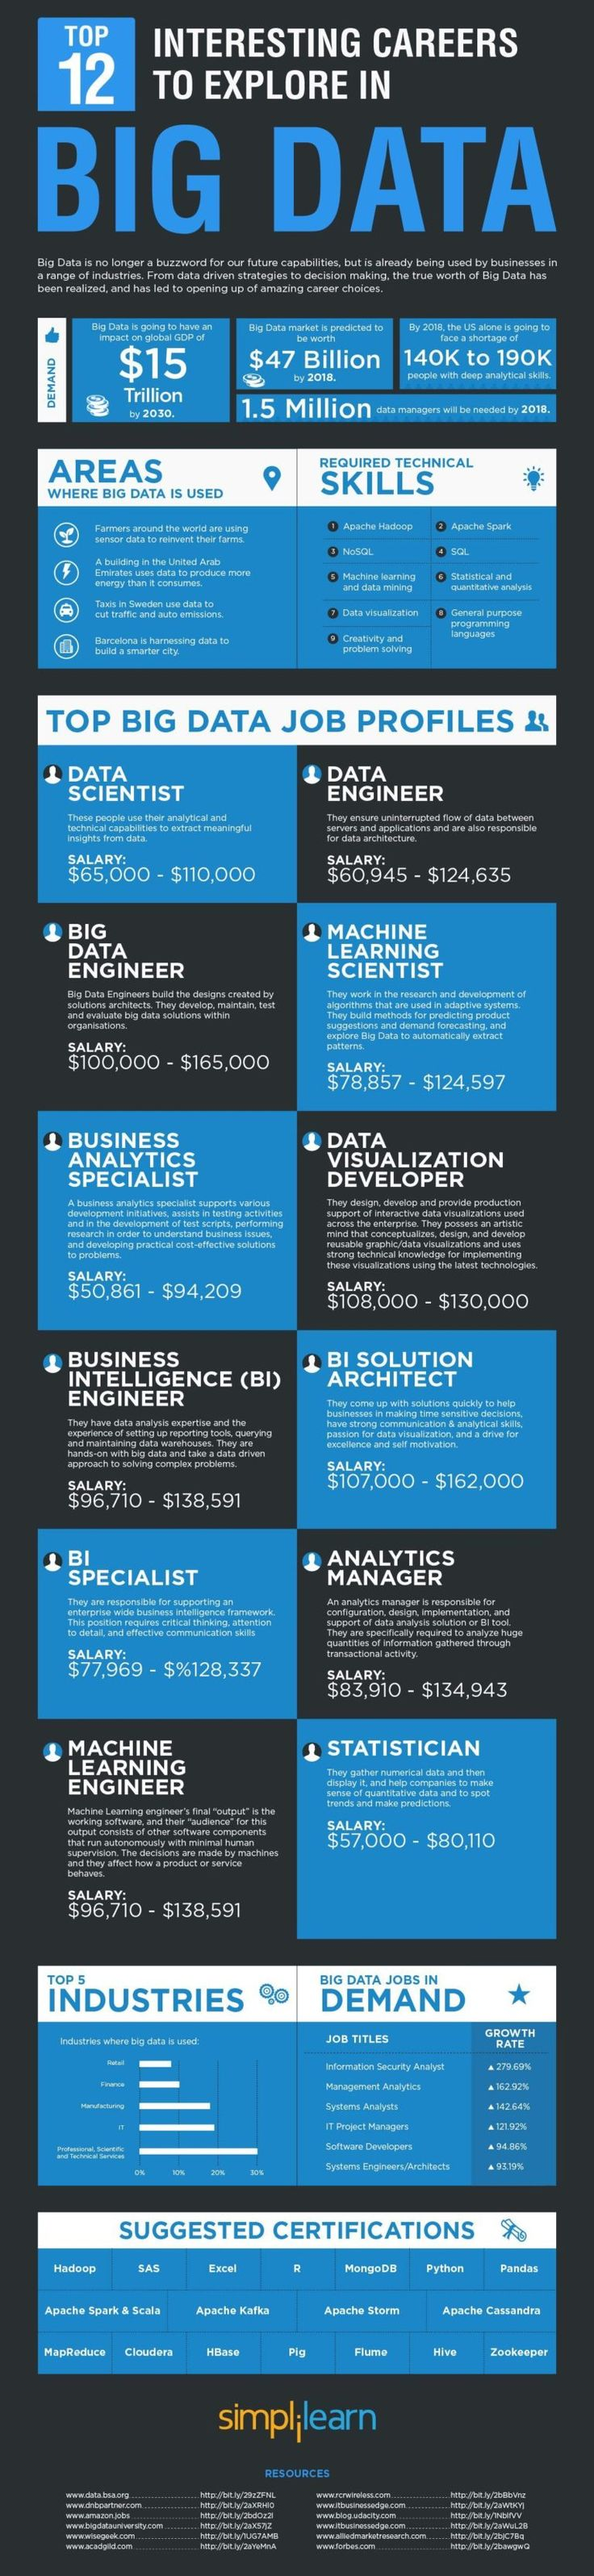 12 Interesting Career options in Big Data http://cloudtweaks.com/2016/09/infographic-12-interesting-big-data-careers-explore/